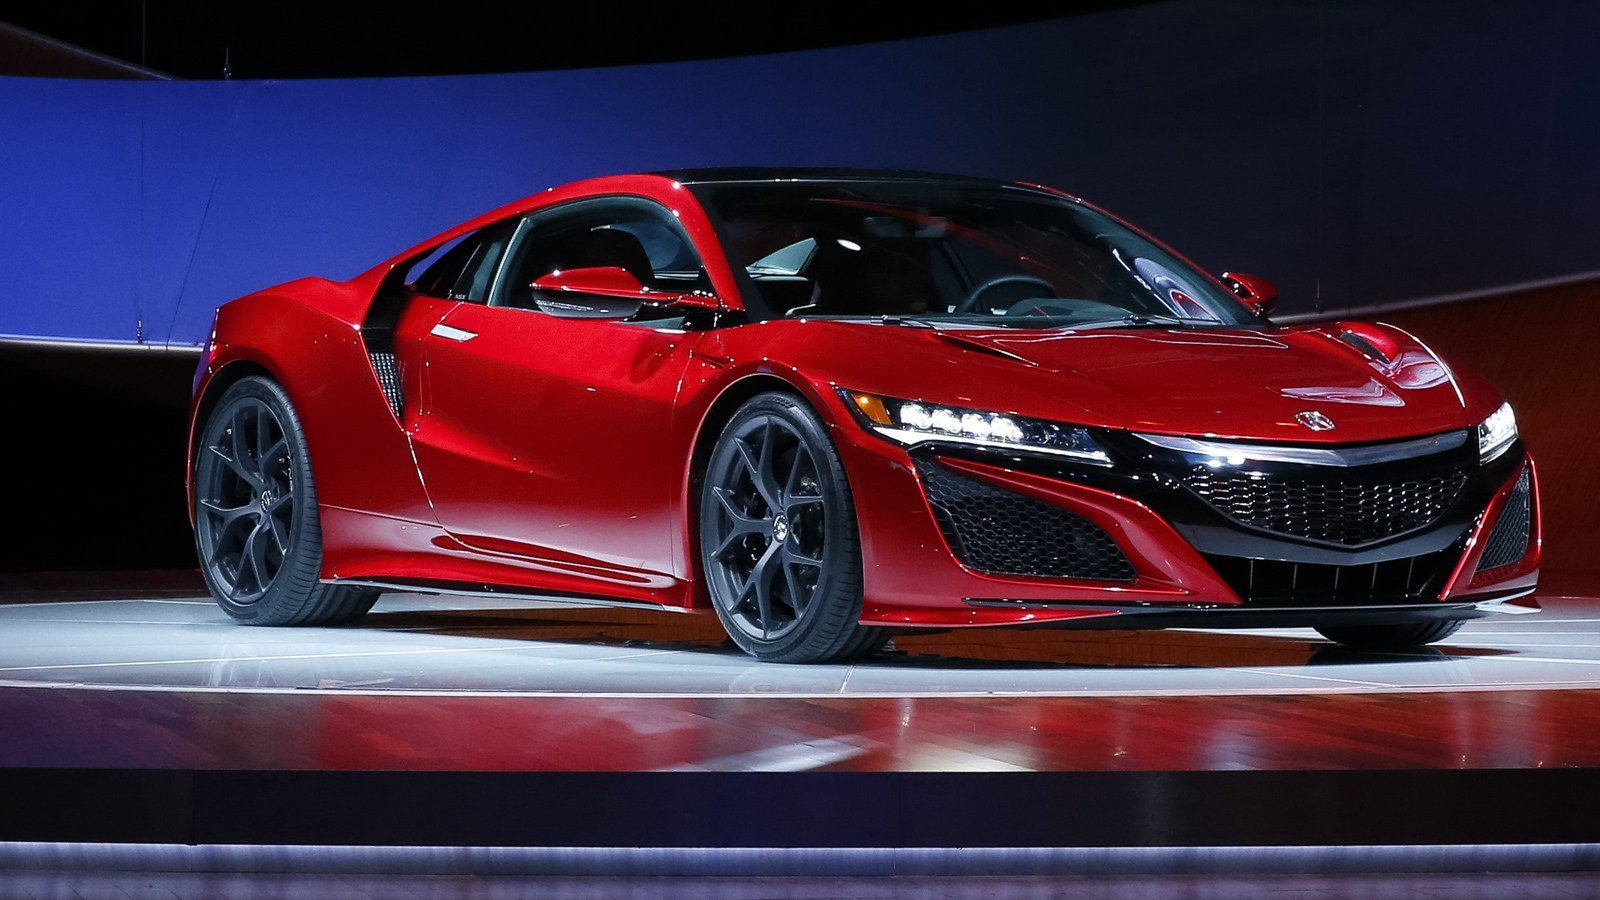 Latest 2016 Acura Nsx Price Release Date Engine 60 Exterior Free Download